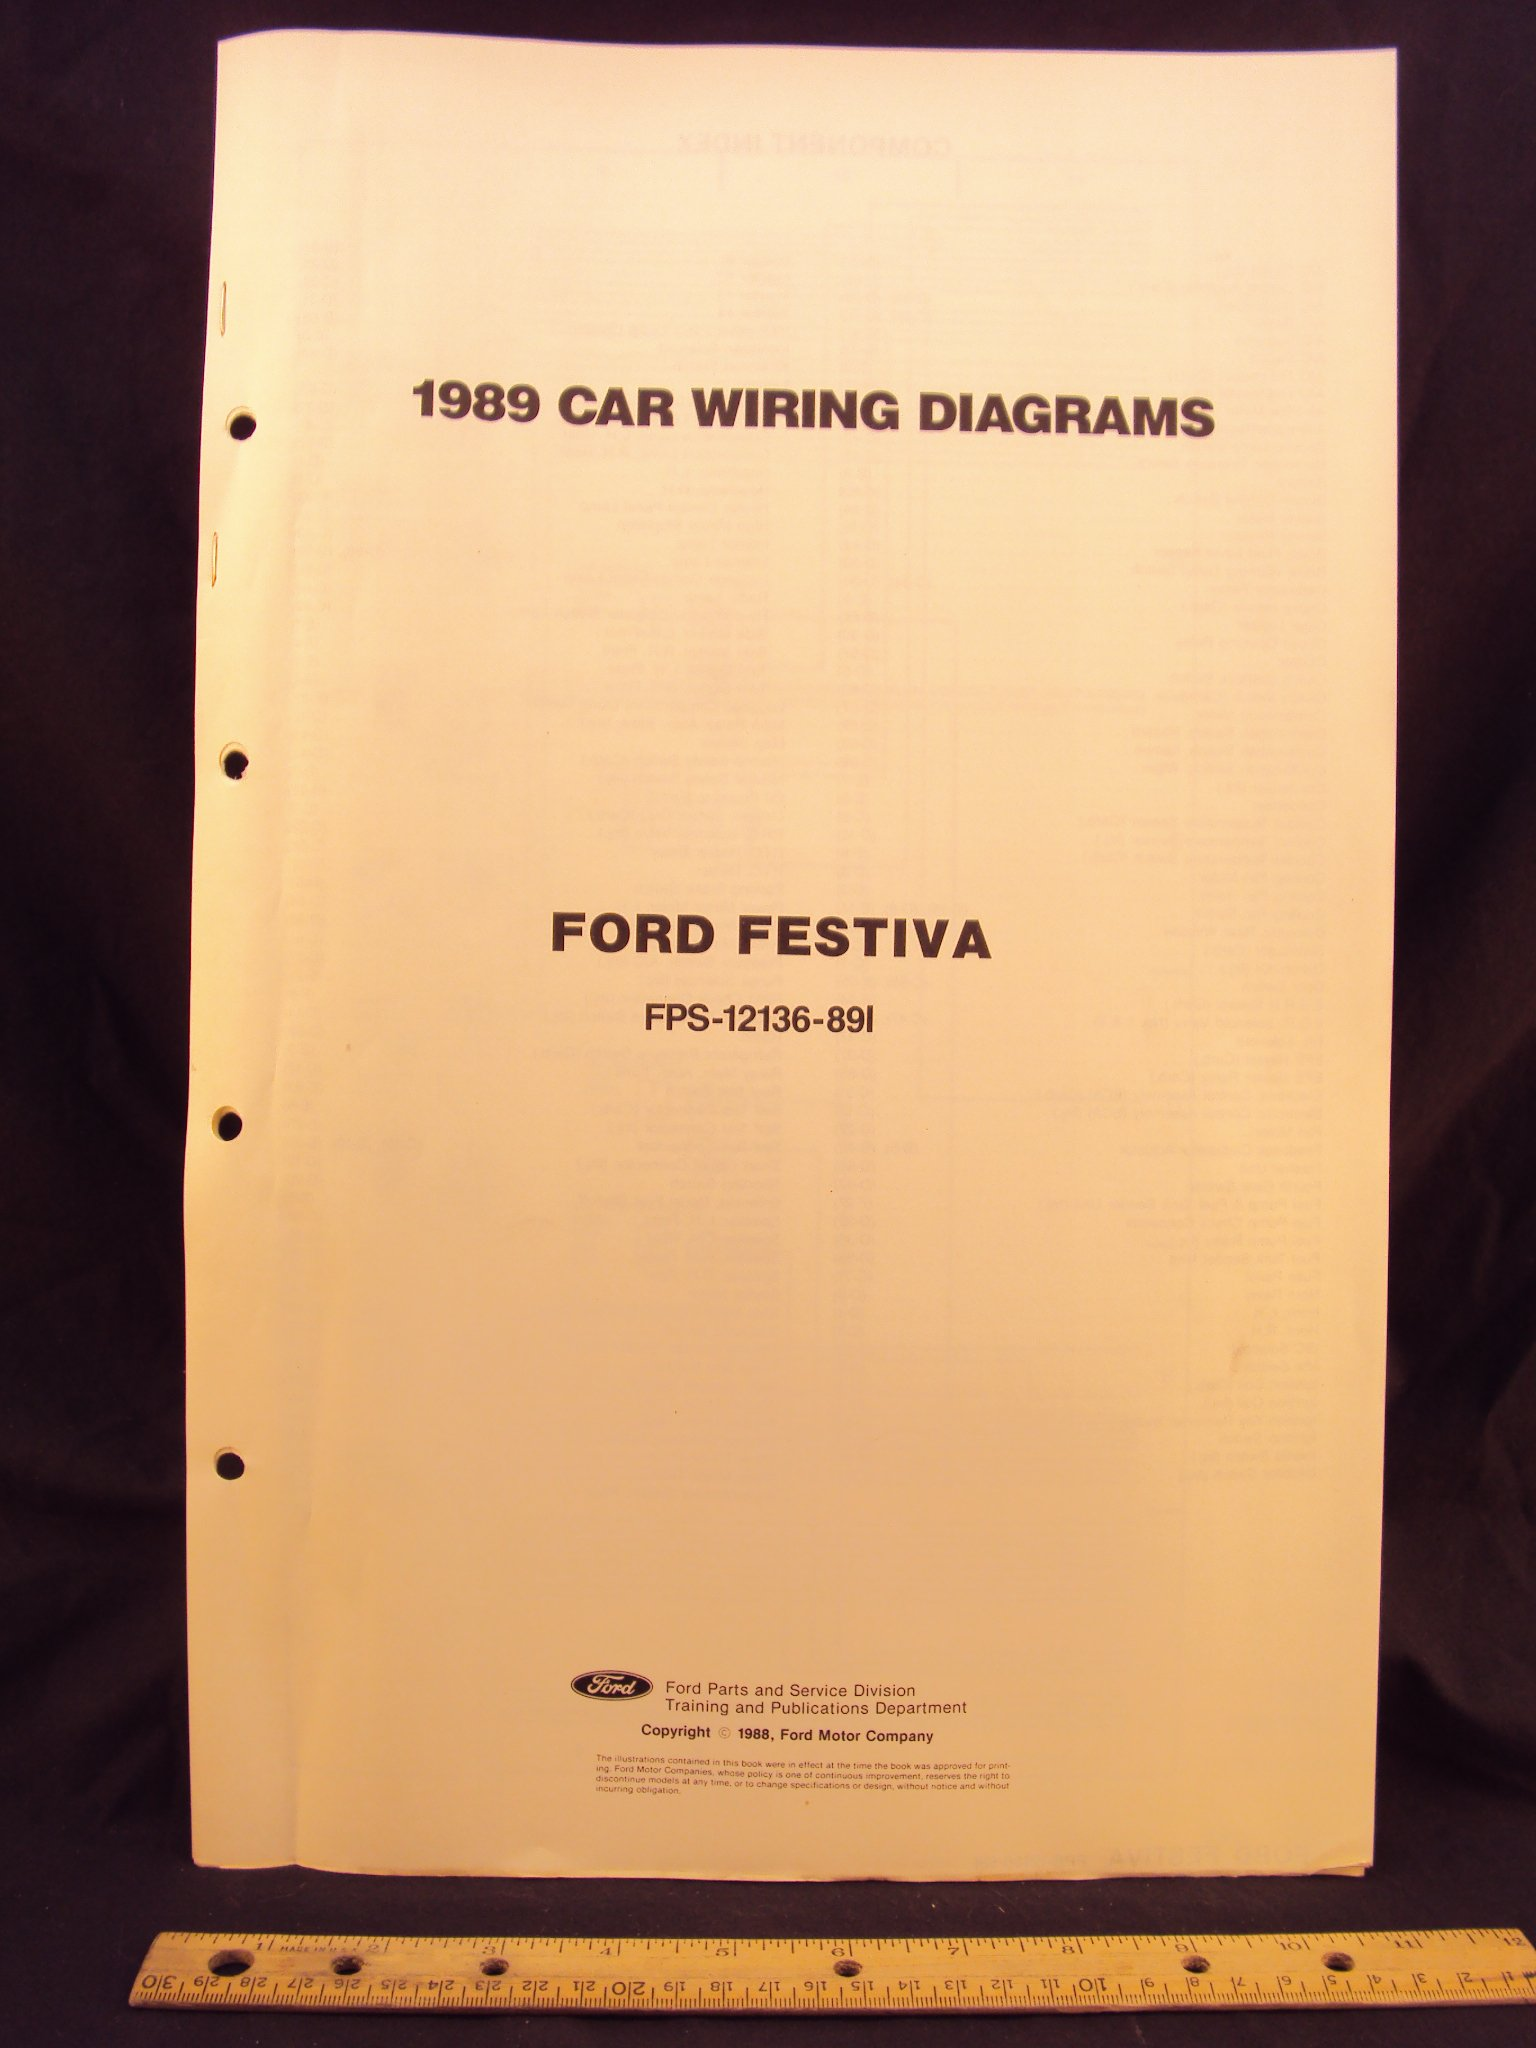 Awesome 1989 Ford Festiva Electrical Wiring Diagrams Schematics Ford Wiring Cloud Mousmenurrecoveryedborg